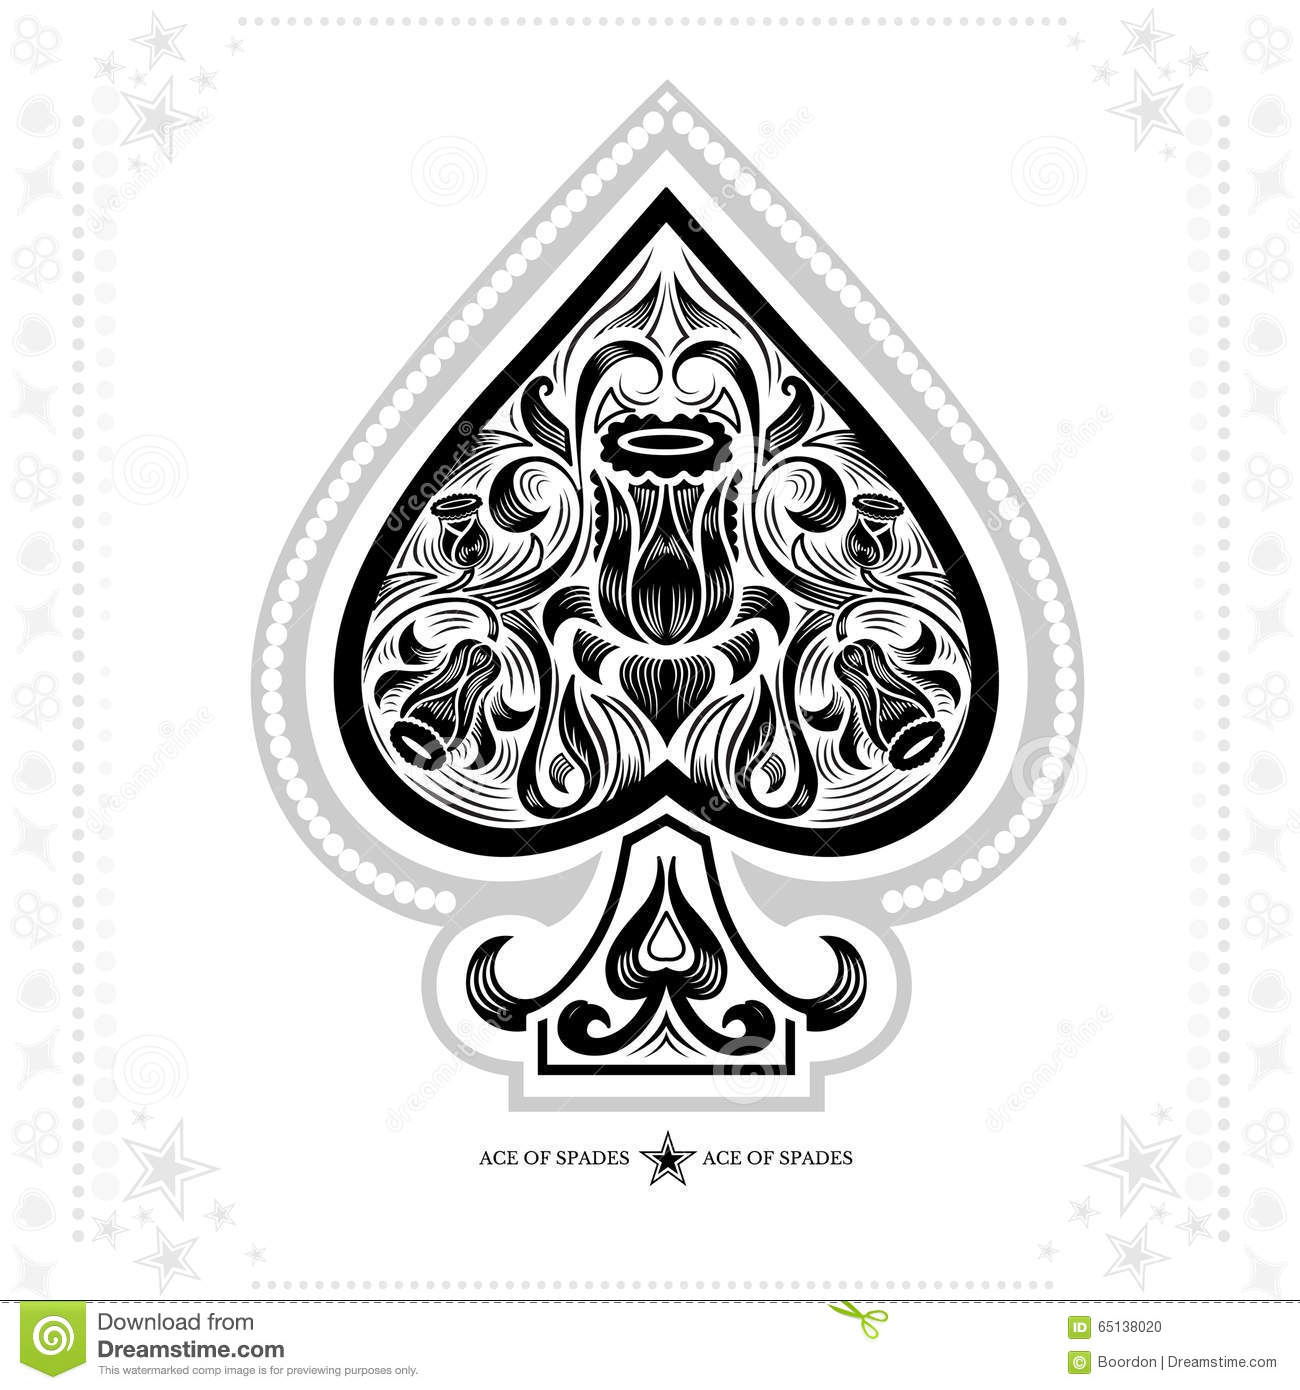 Ace Of Spades With Flower Pattern Inside. Black In White Stock ...